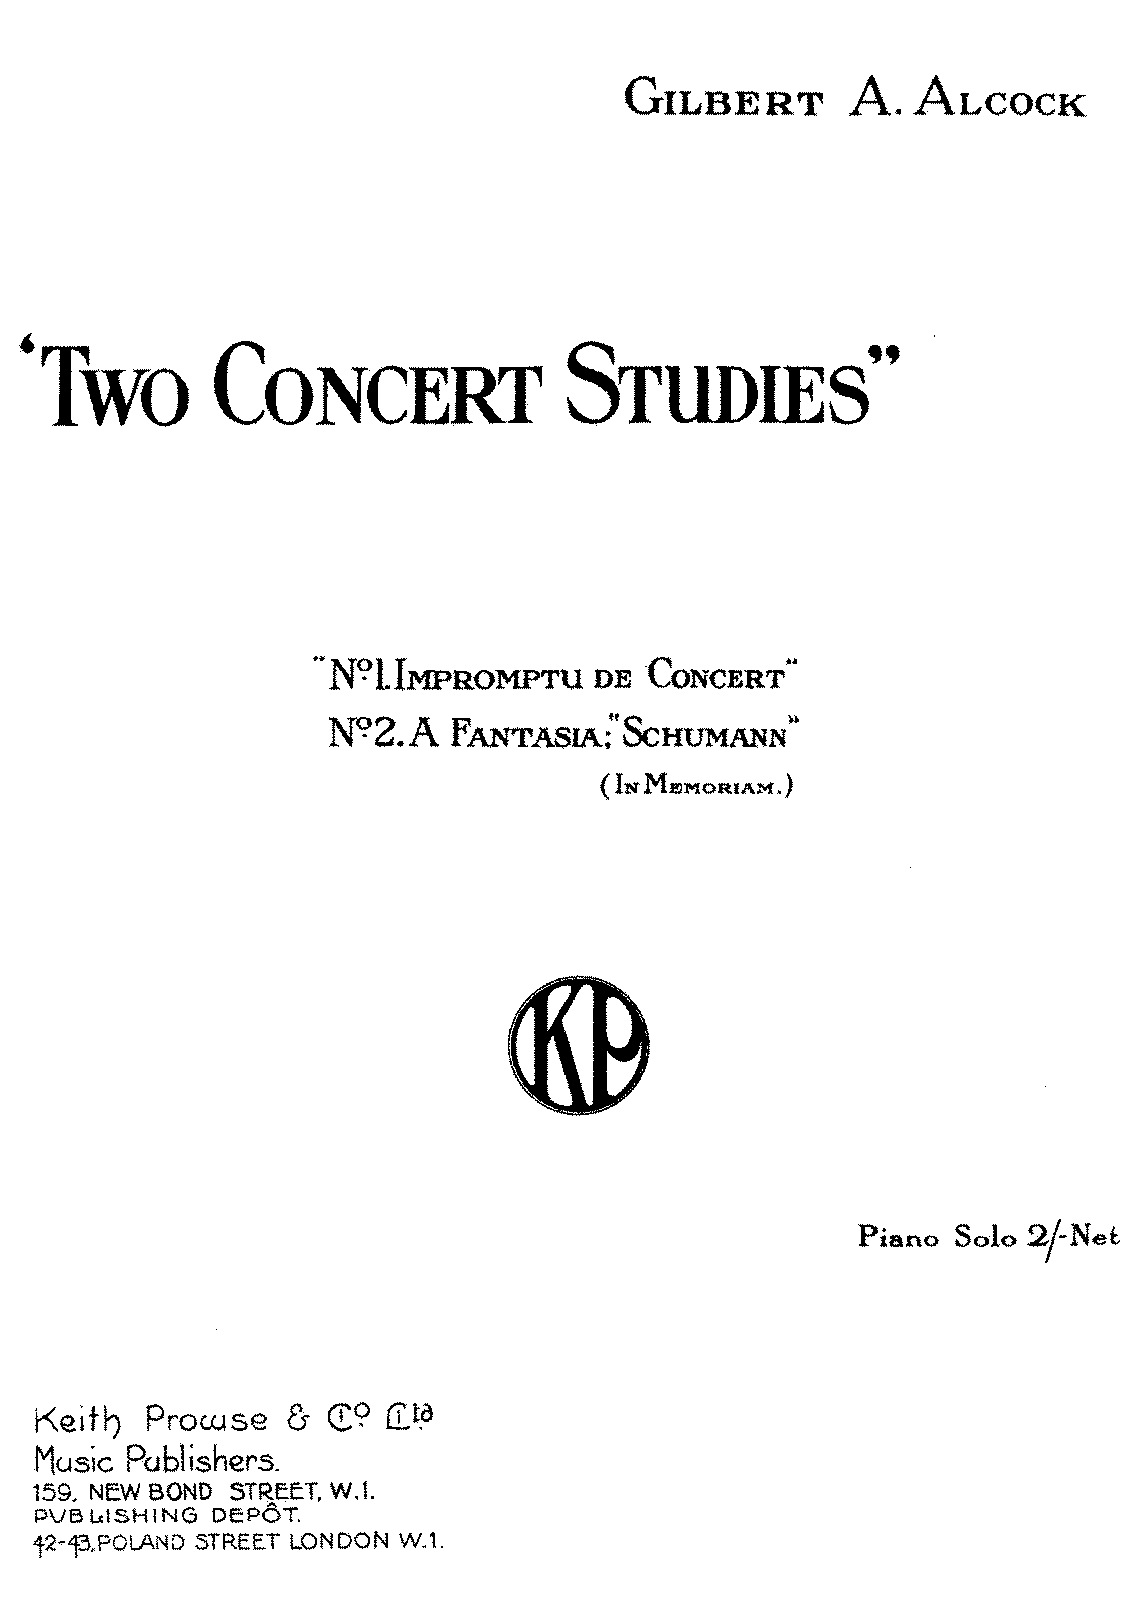 PMLP355153-Alcock, Gilbert A. - 1870- Two Concert Studies.pdf